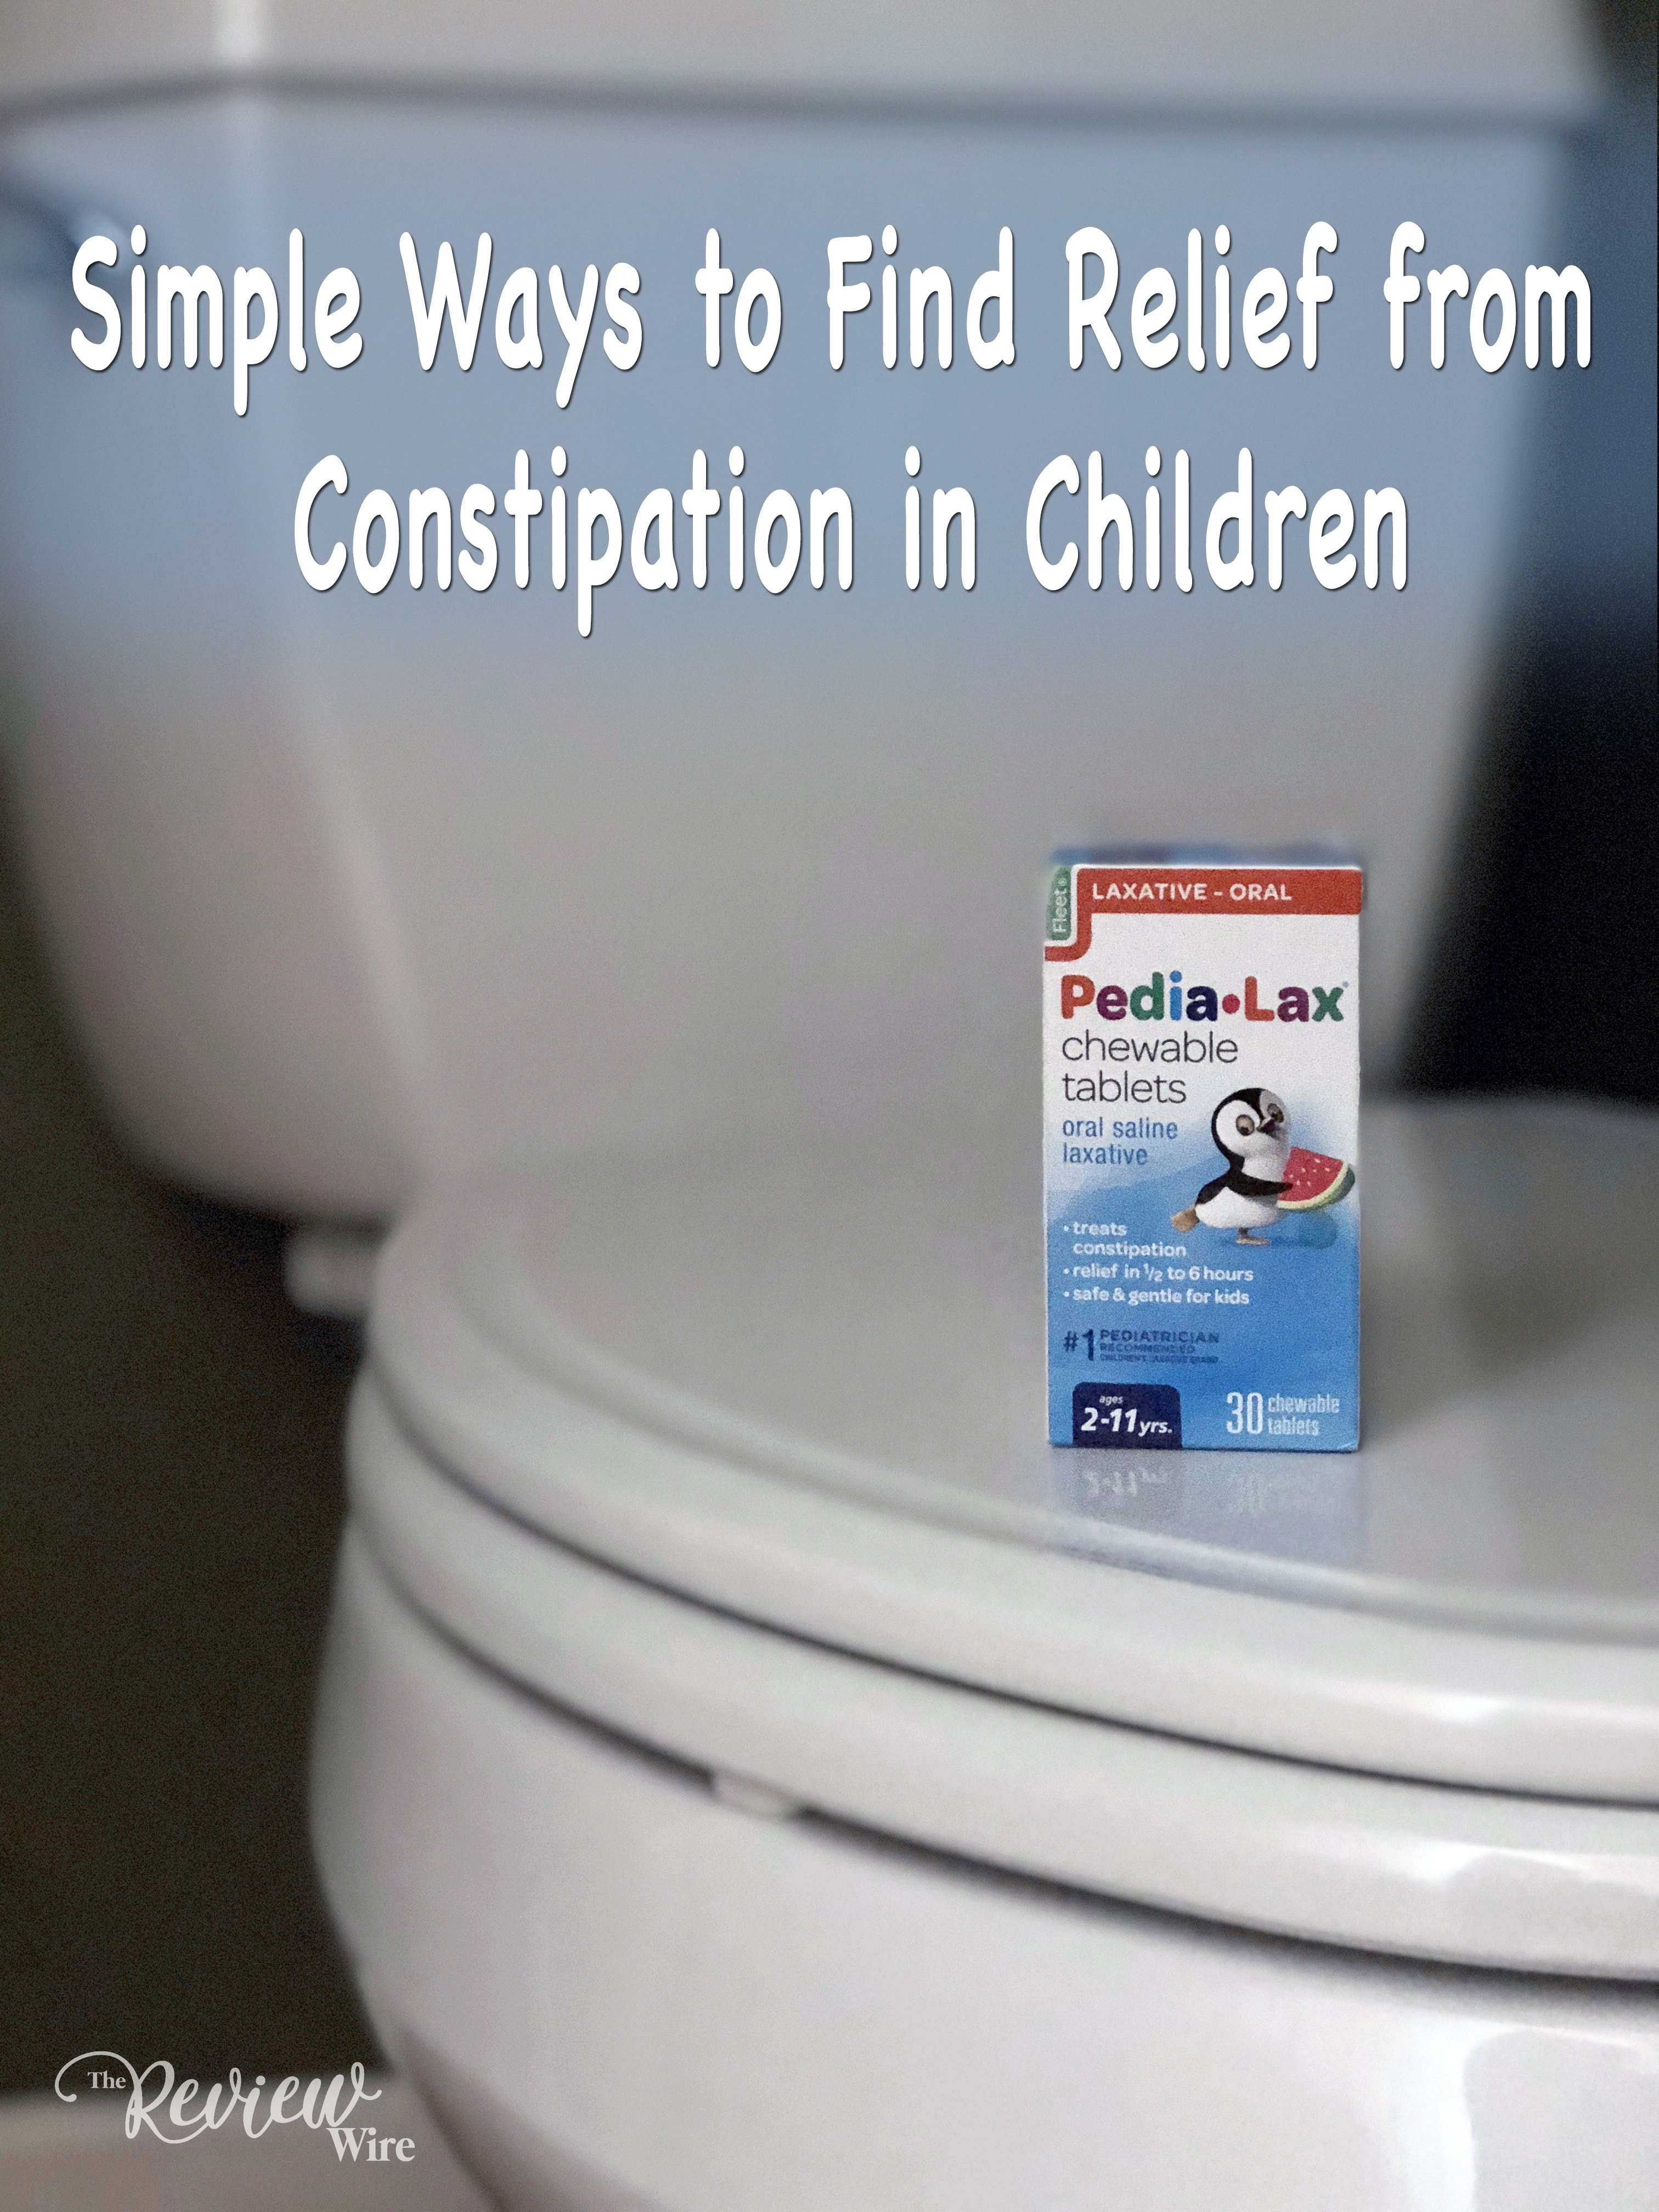 The Review Wire Simple Ways to Find Relief from Constipation in Children